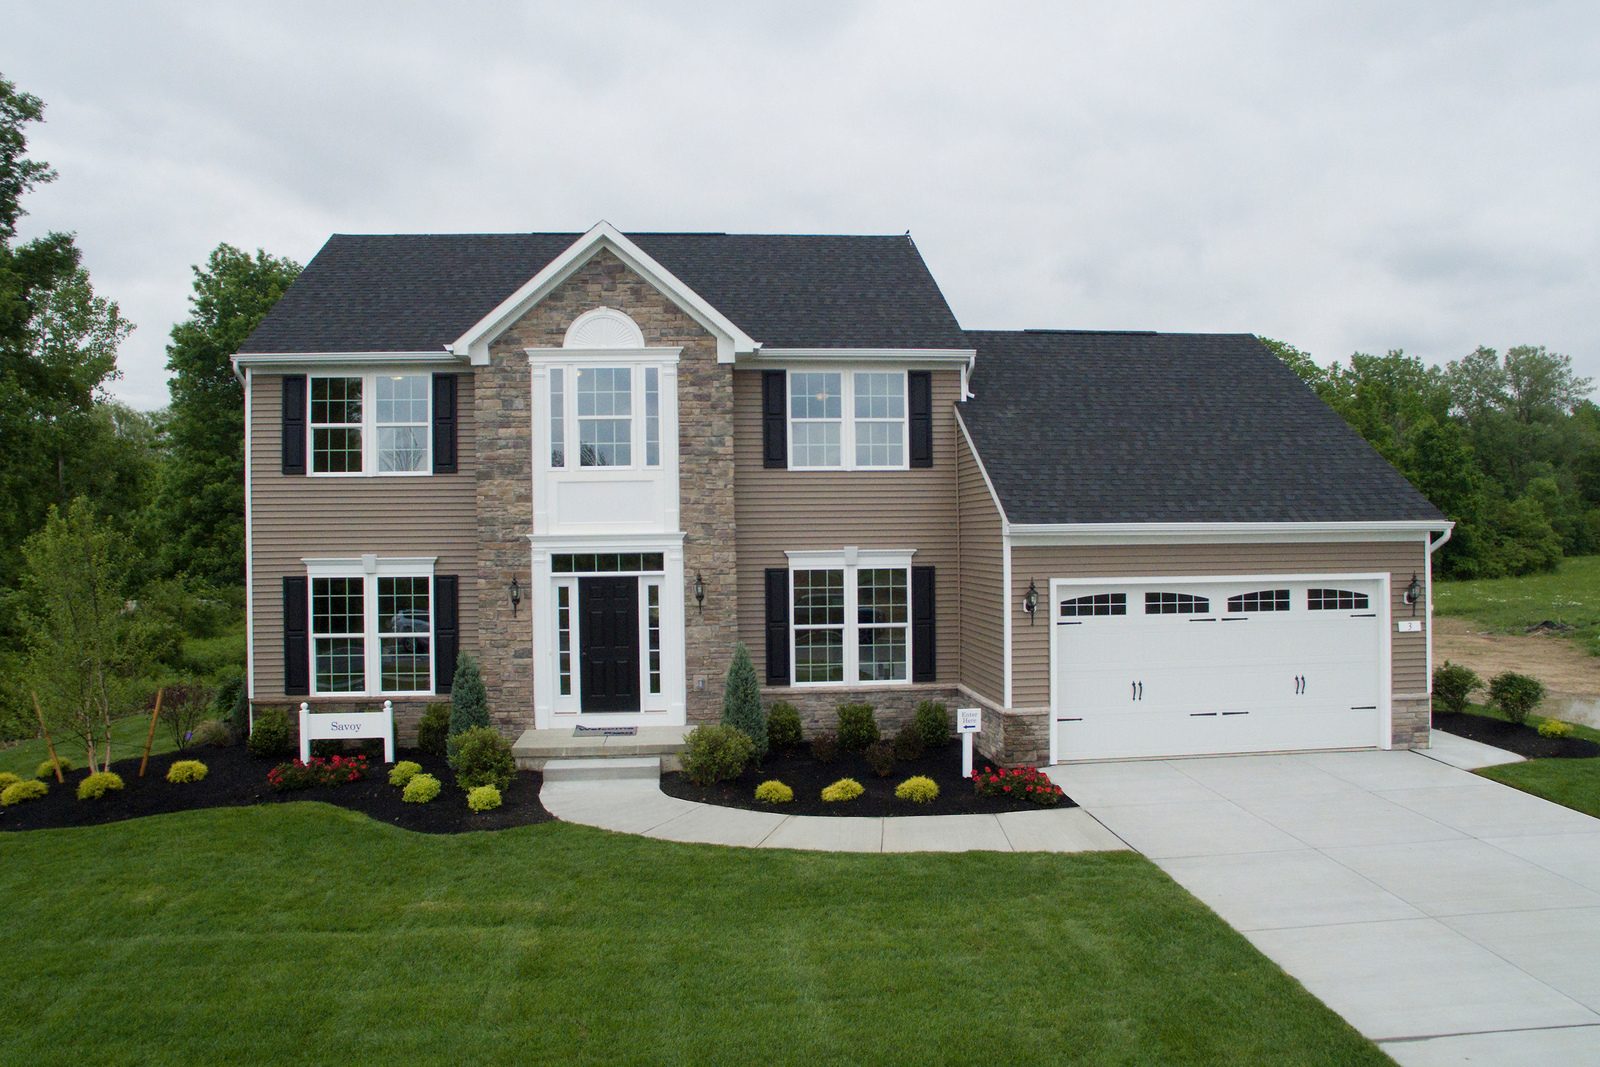 New Savoy Home Model For Sale Nvhomes